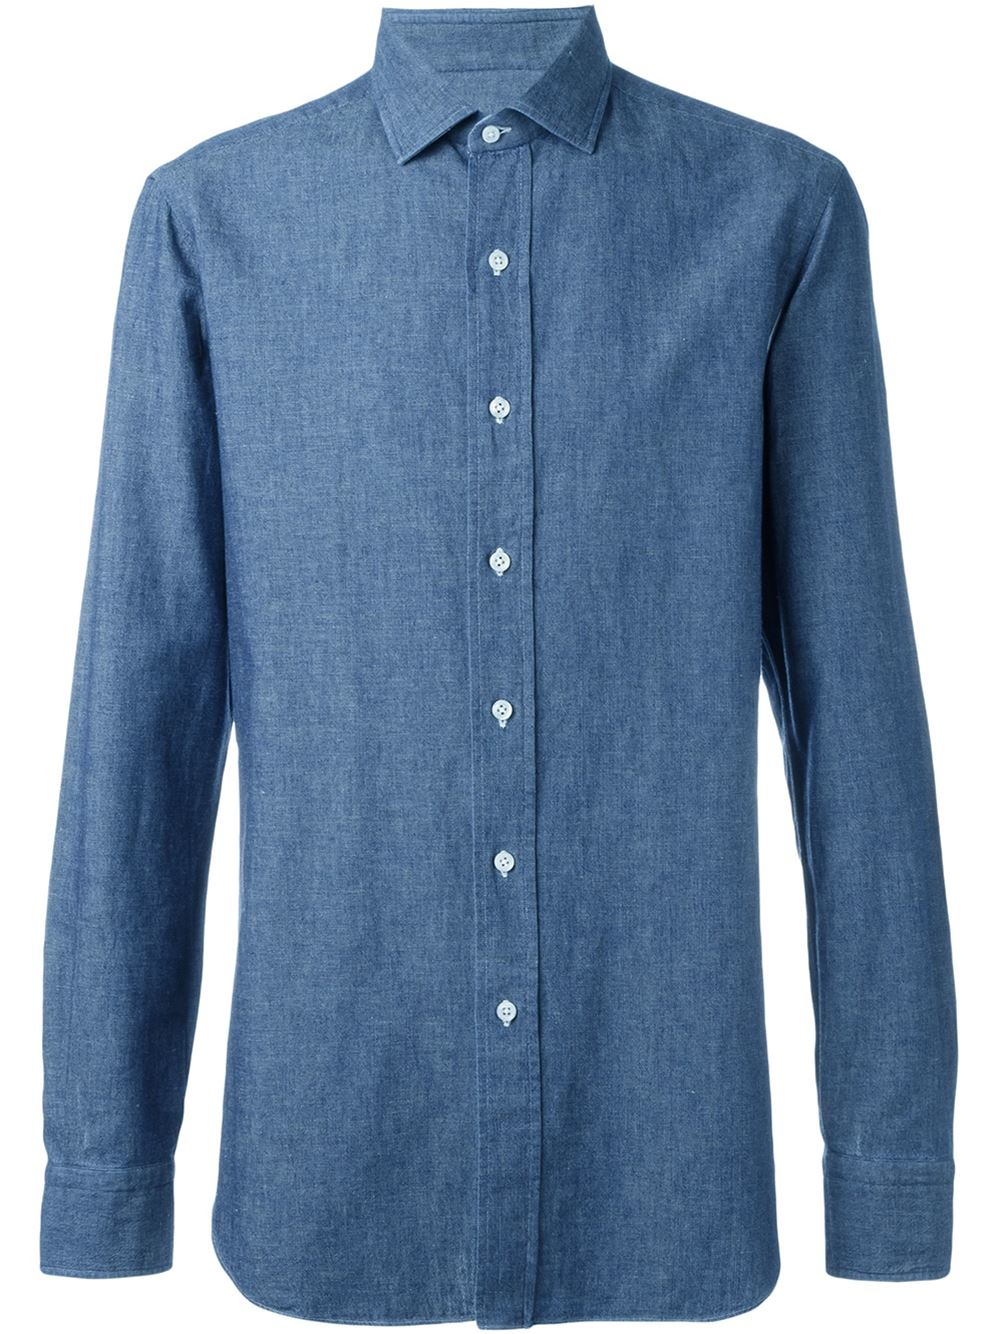 Lyst salvatore piccolo classic button down shirt in blue for Preppy button down shirts